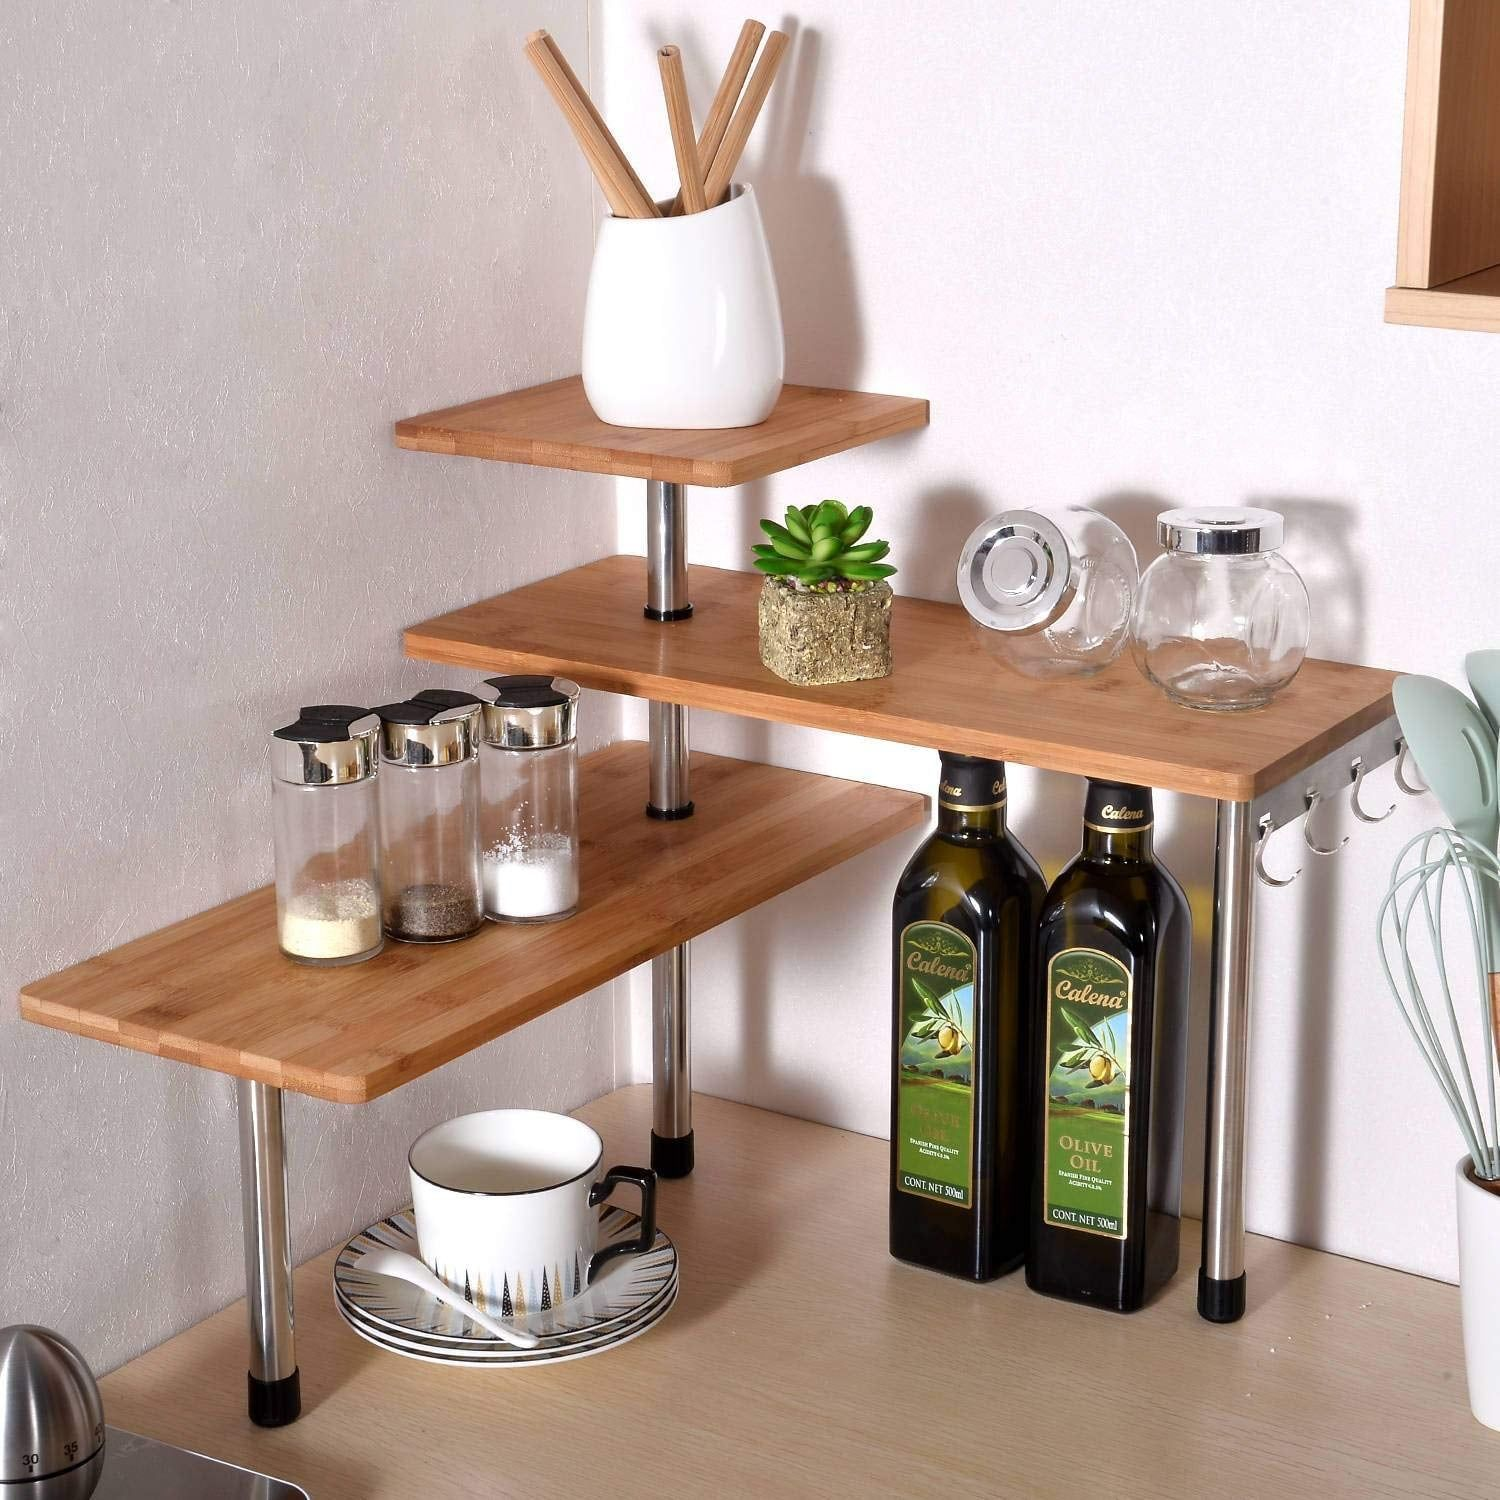 Ollieroo 3 Tier Corner Shelf Bamboo Spice Rack Corner Shelving Unit Bamboo Shelf Corner Shelves